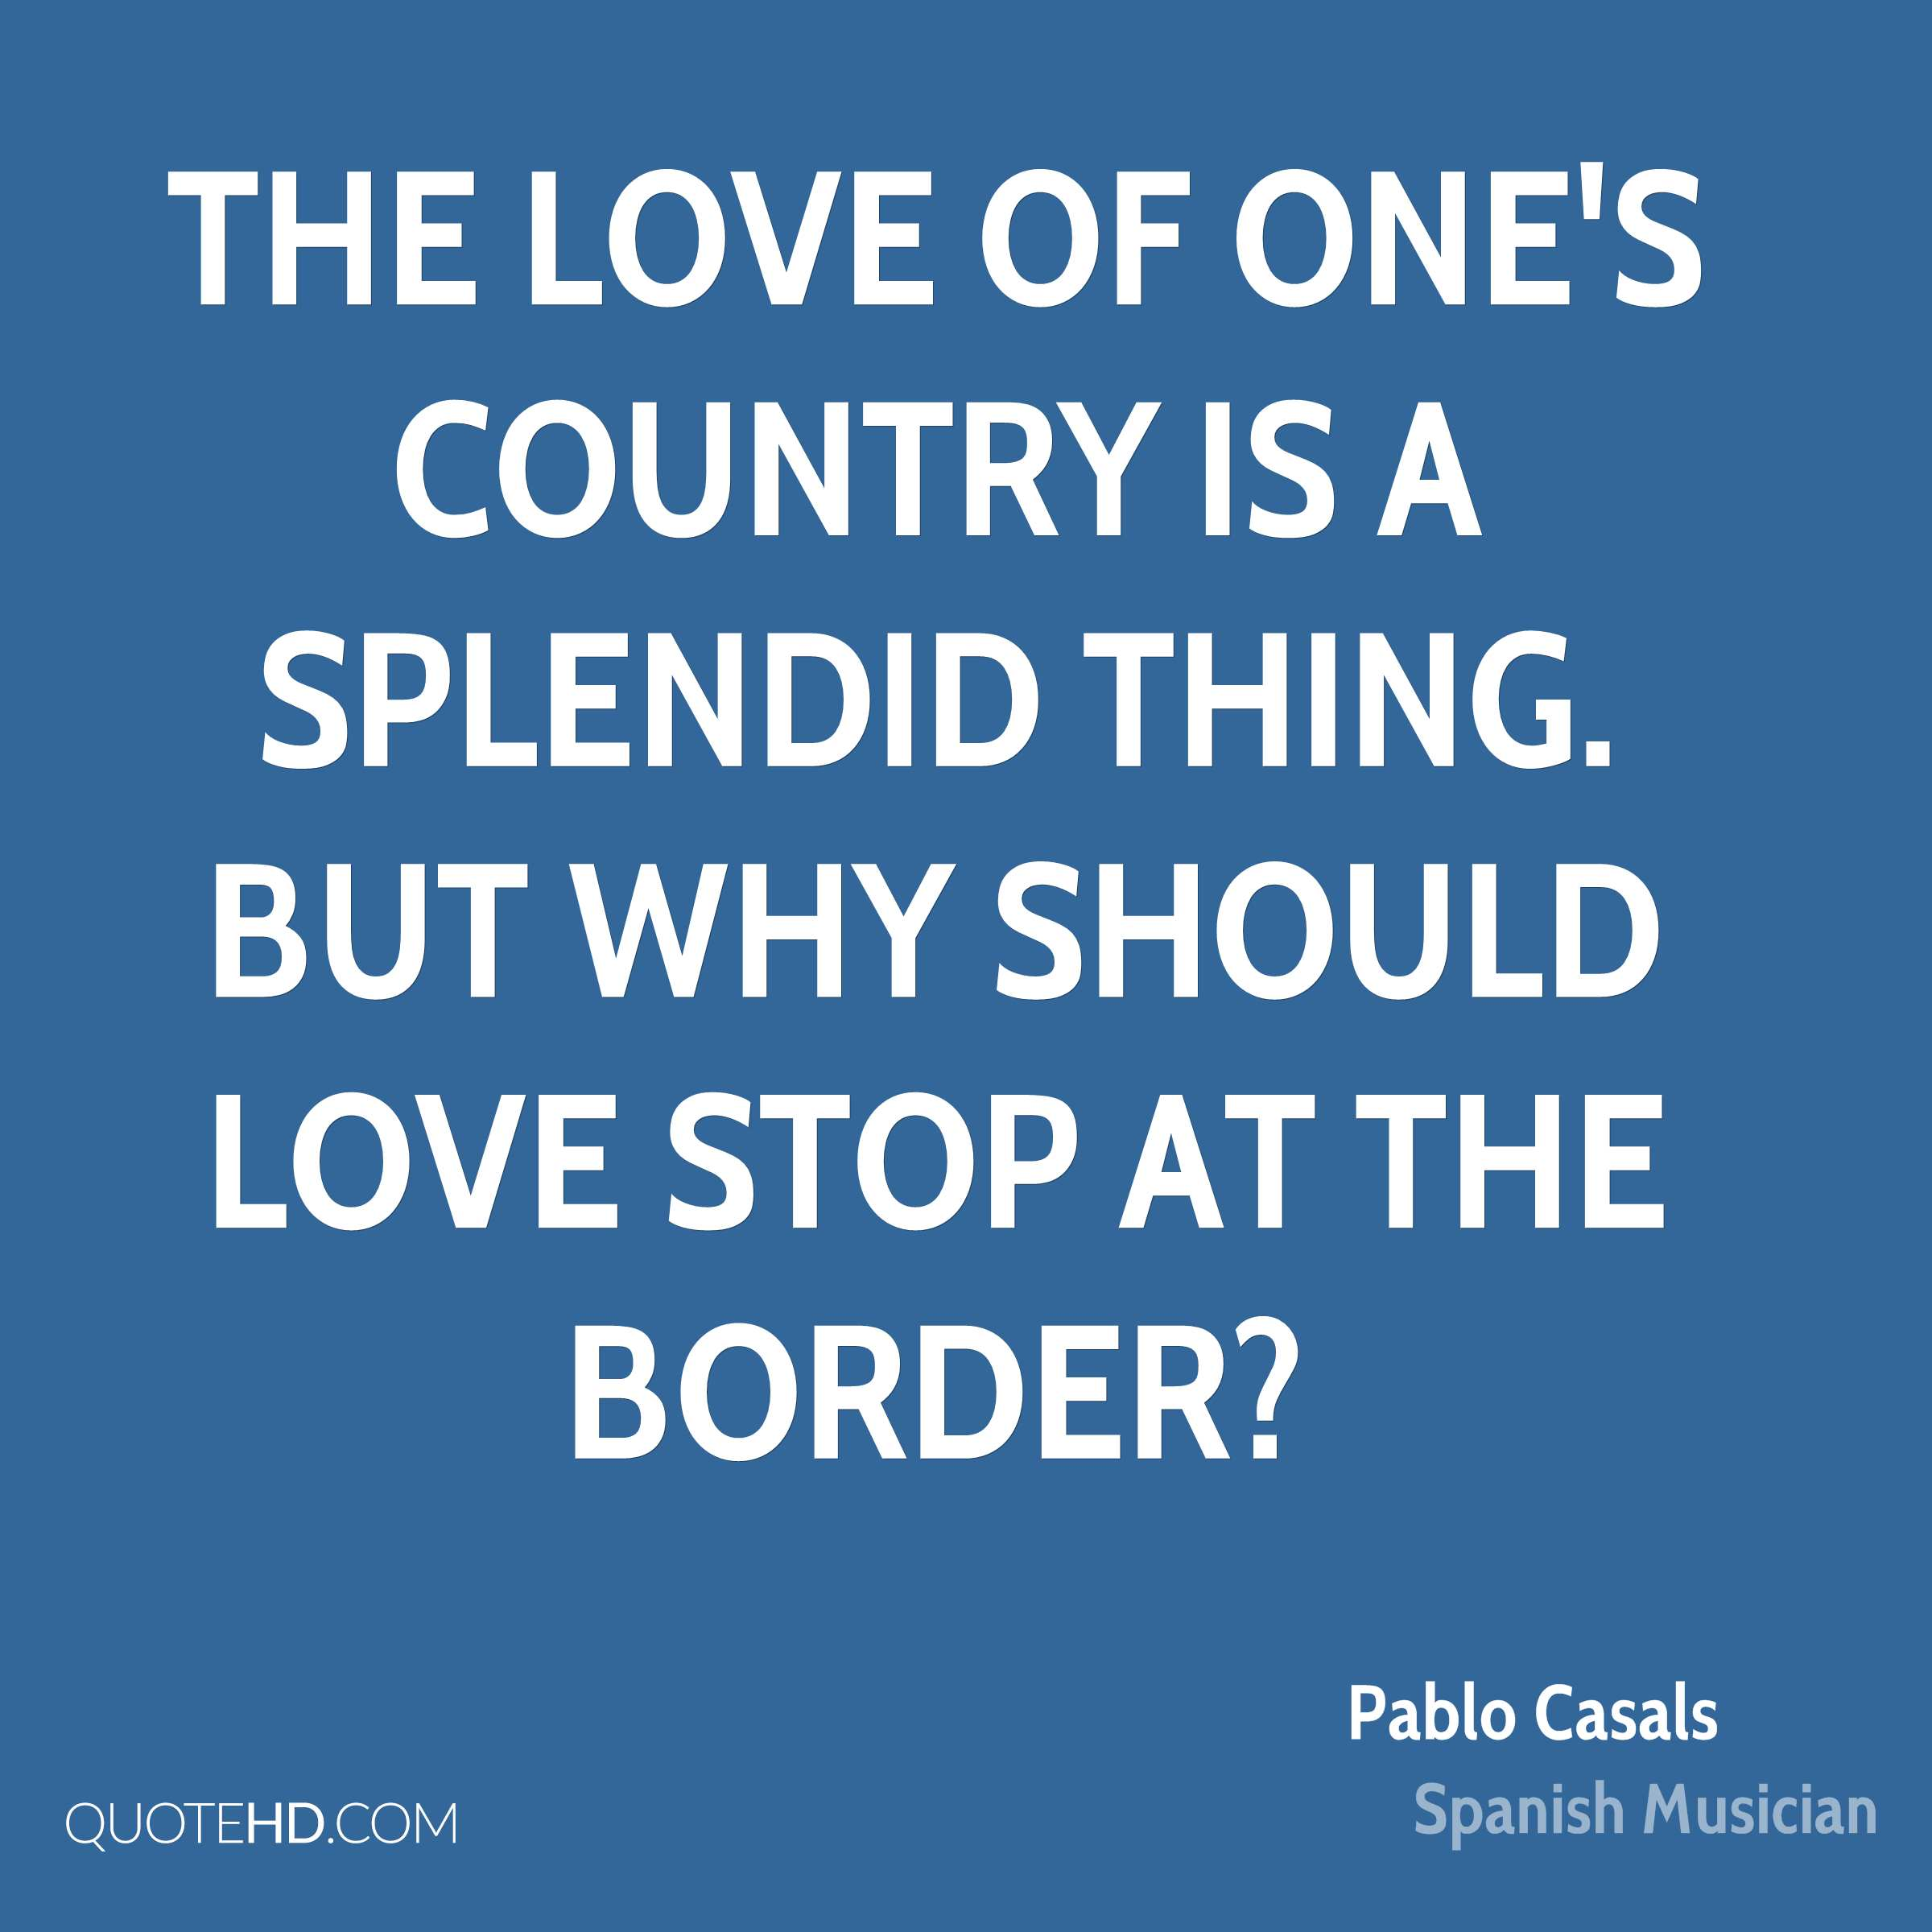 The love of one's country is a splendid thing. But why should love stop at the border?